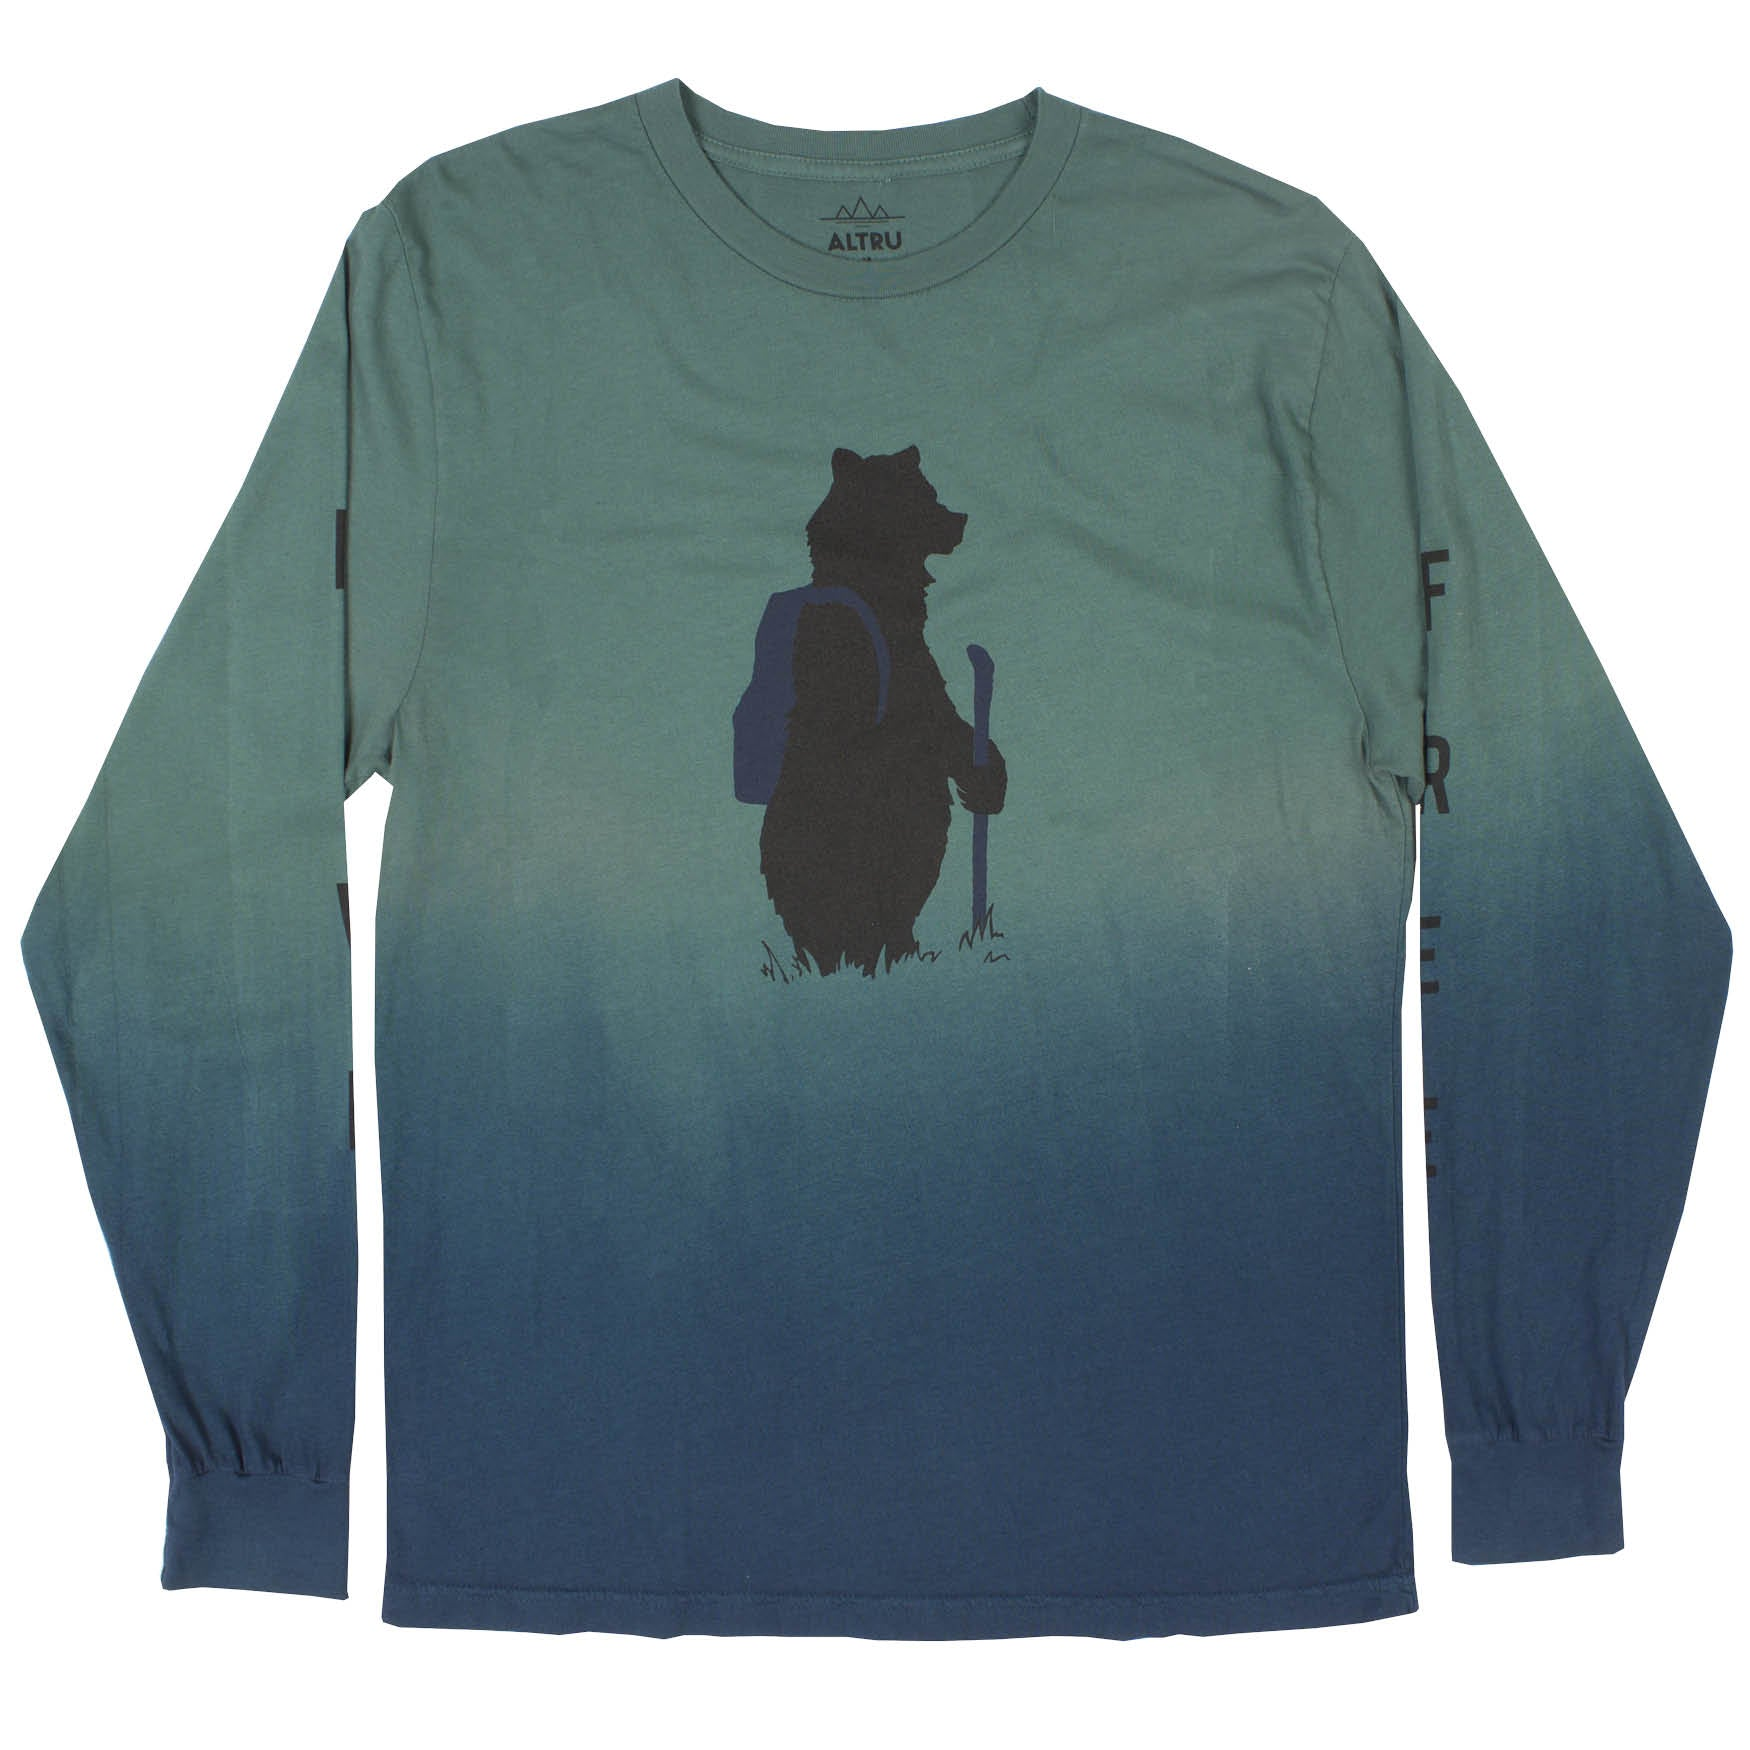 a hiking bear graphic tee by Altru Apparel front